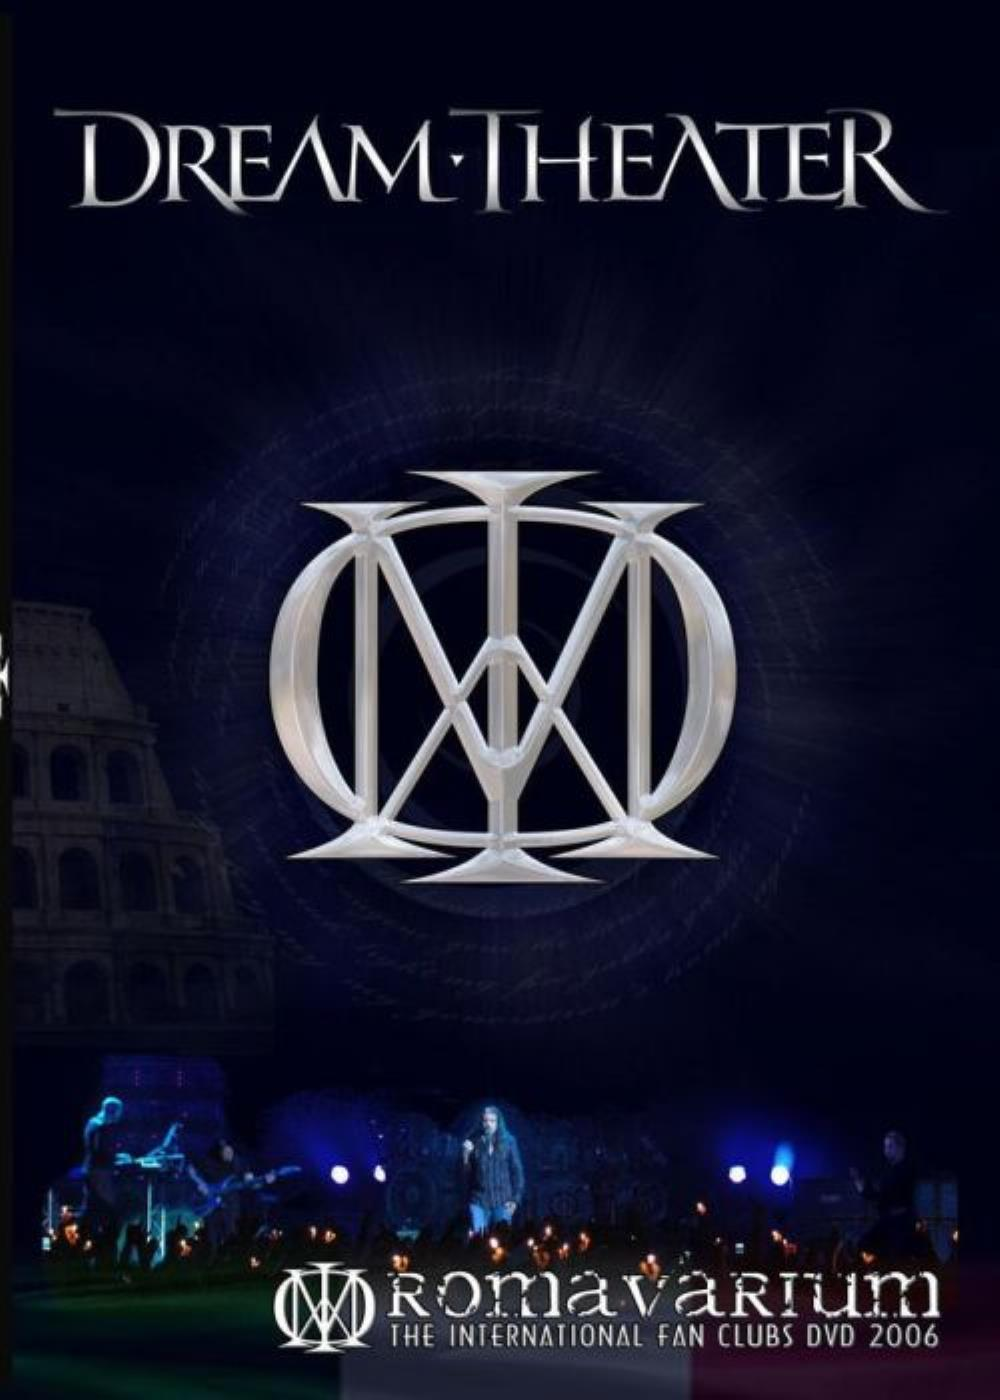 Dream Theater Romavarium album cover